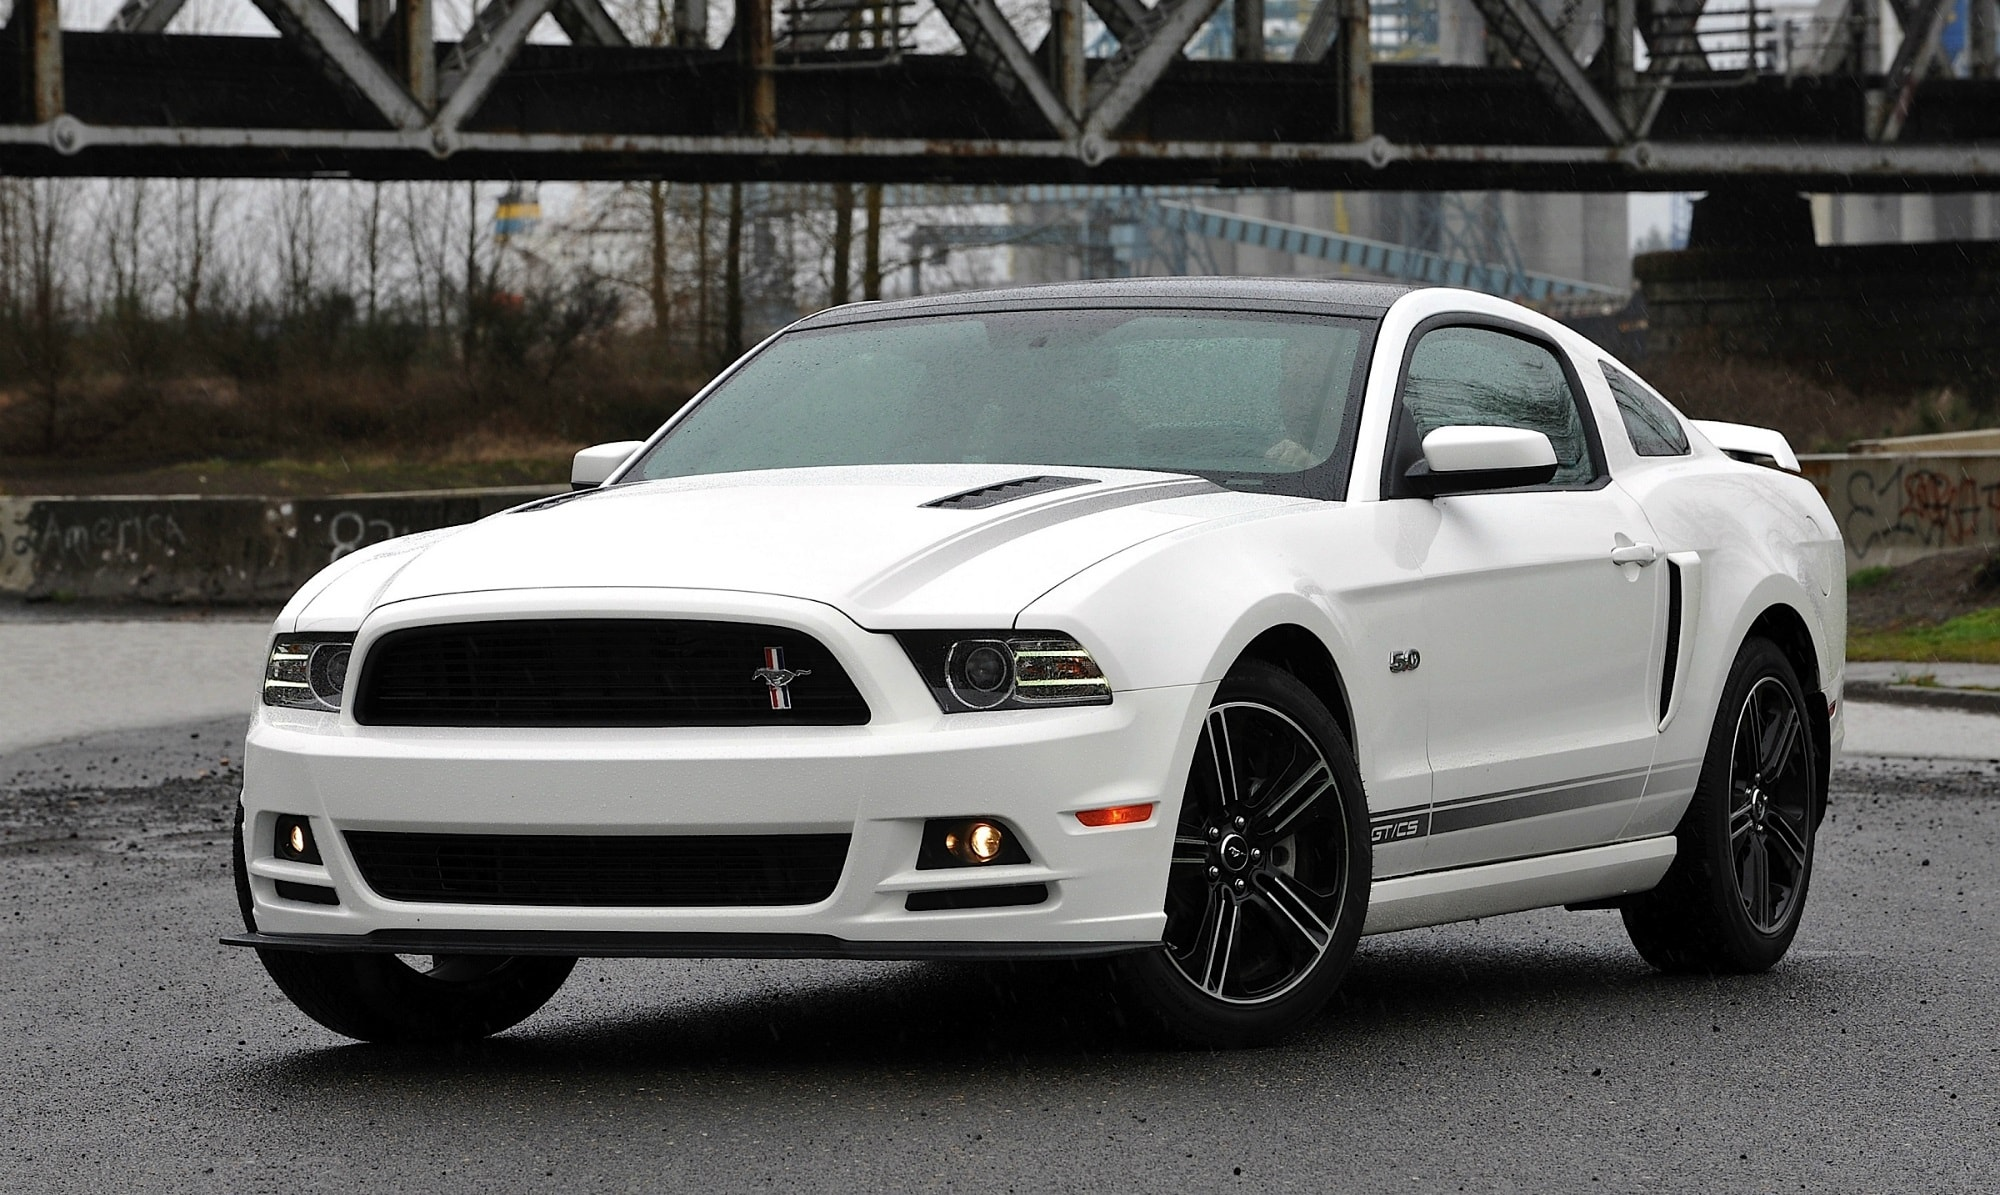 Ford Mustang GT widescreen wallpapers